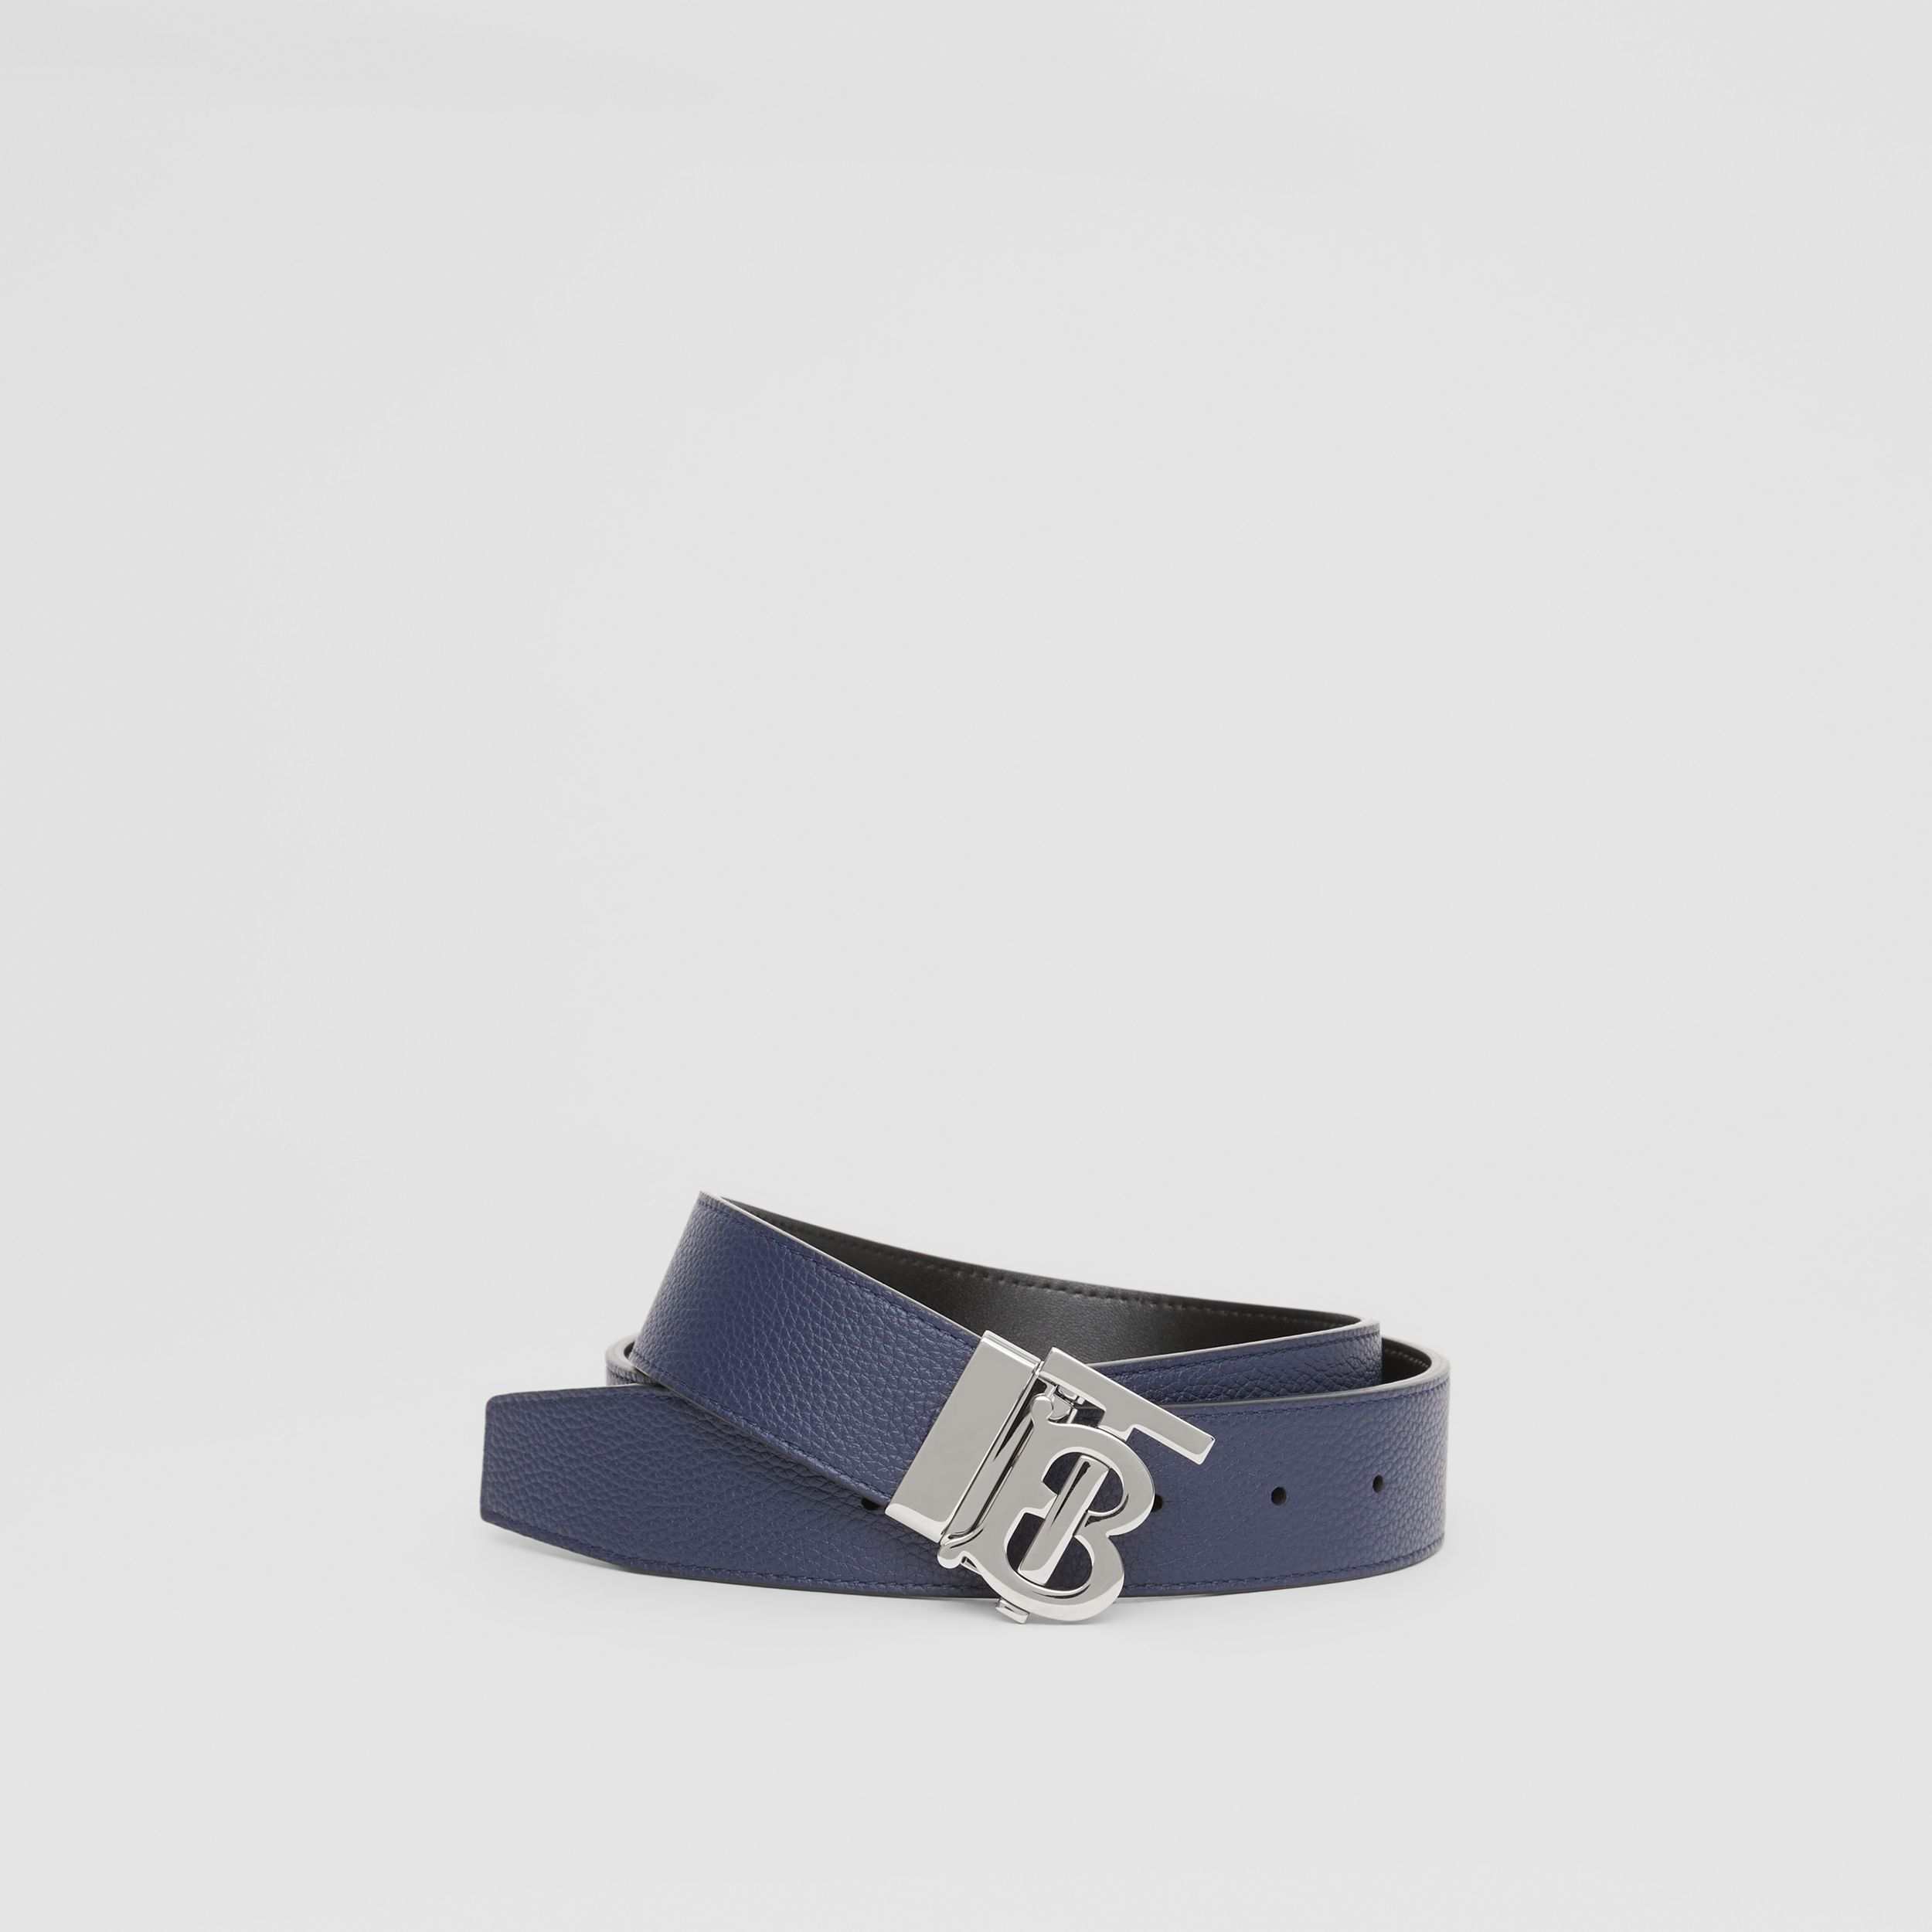 Reversible Monogram Motif Leather Belt in Navy/black - Men | Burberry Australia - 1